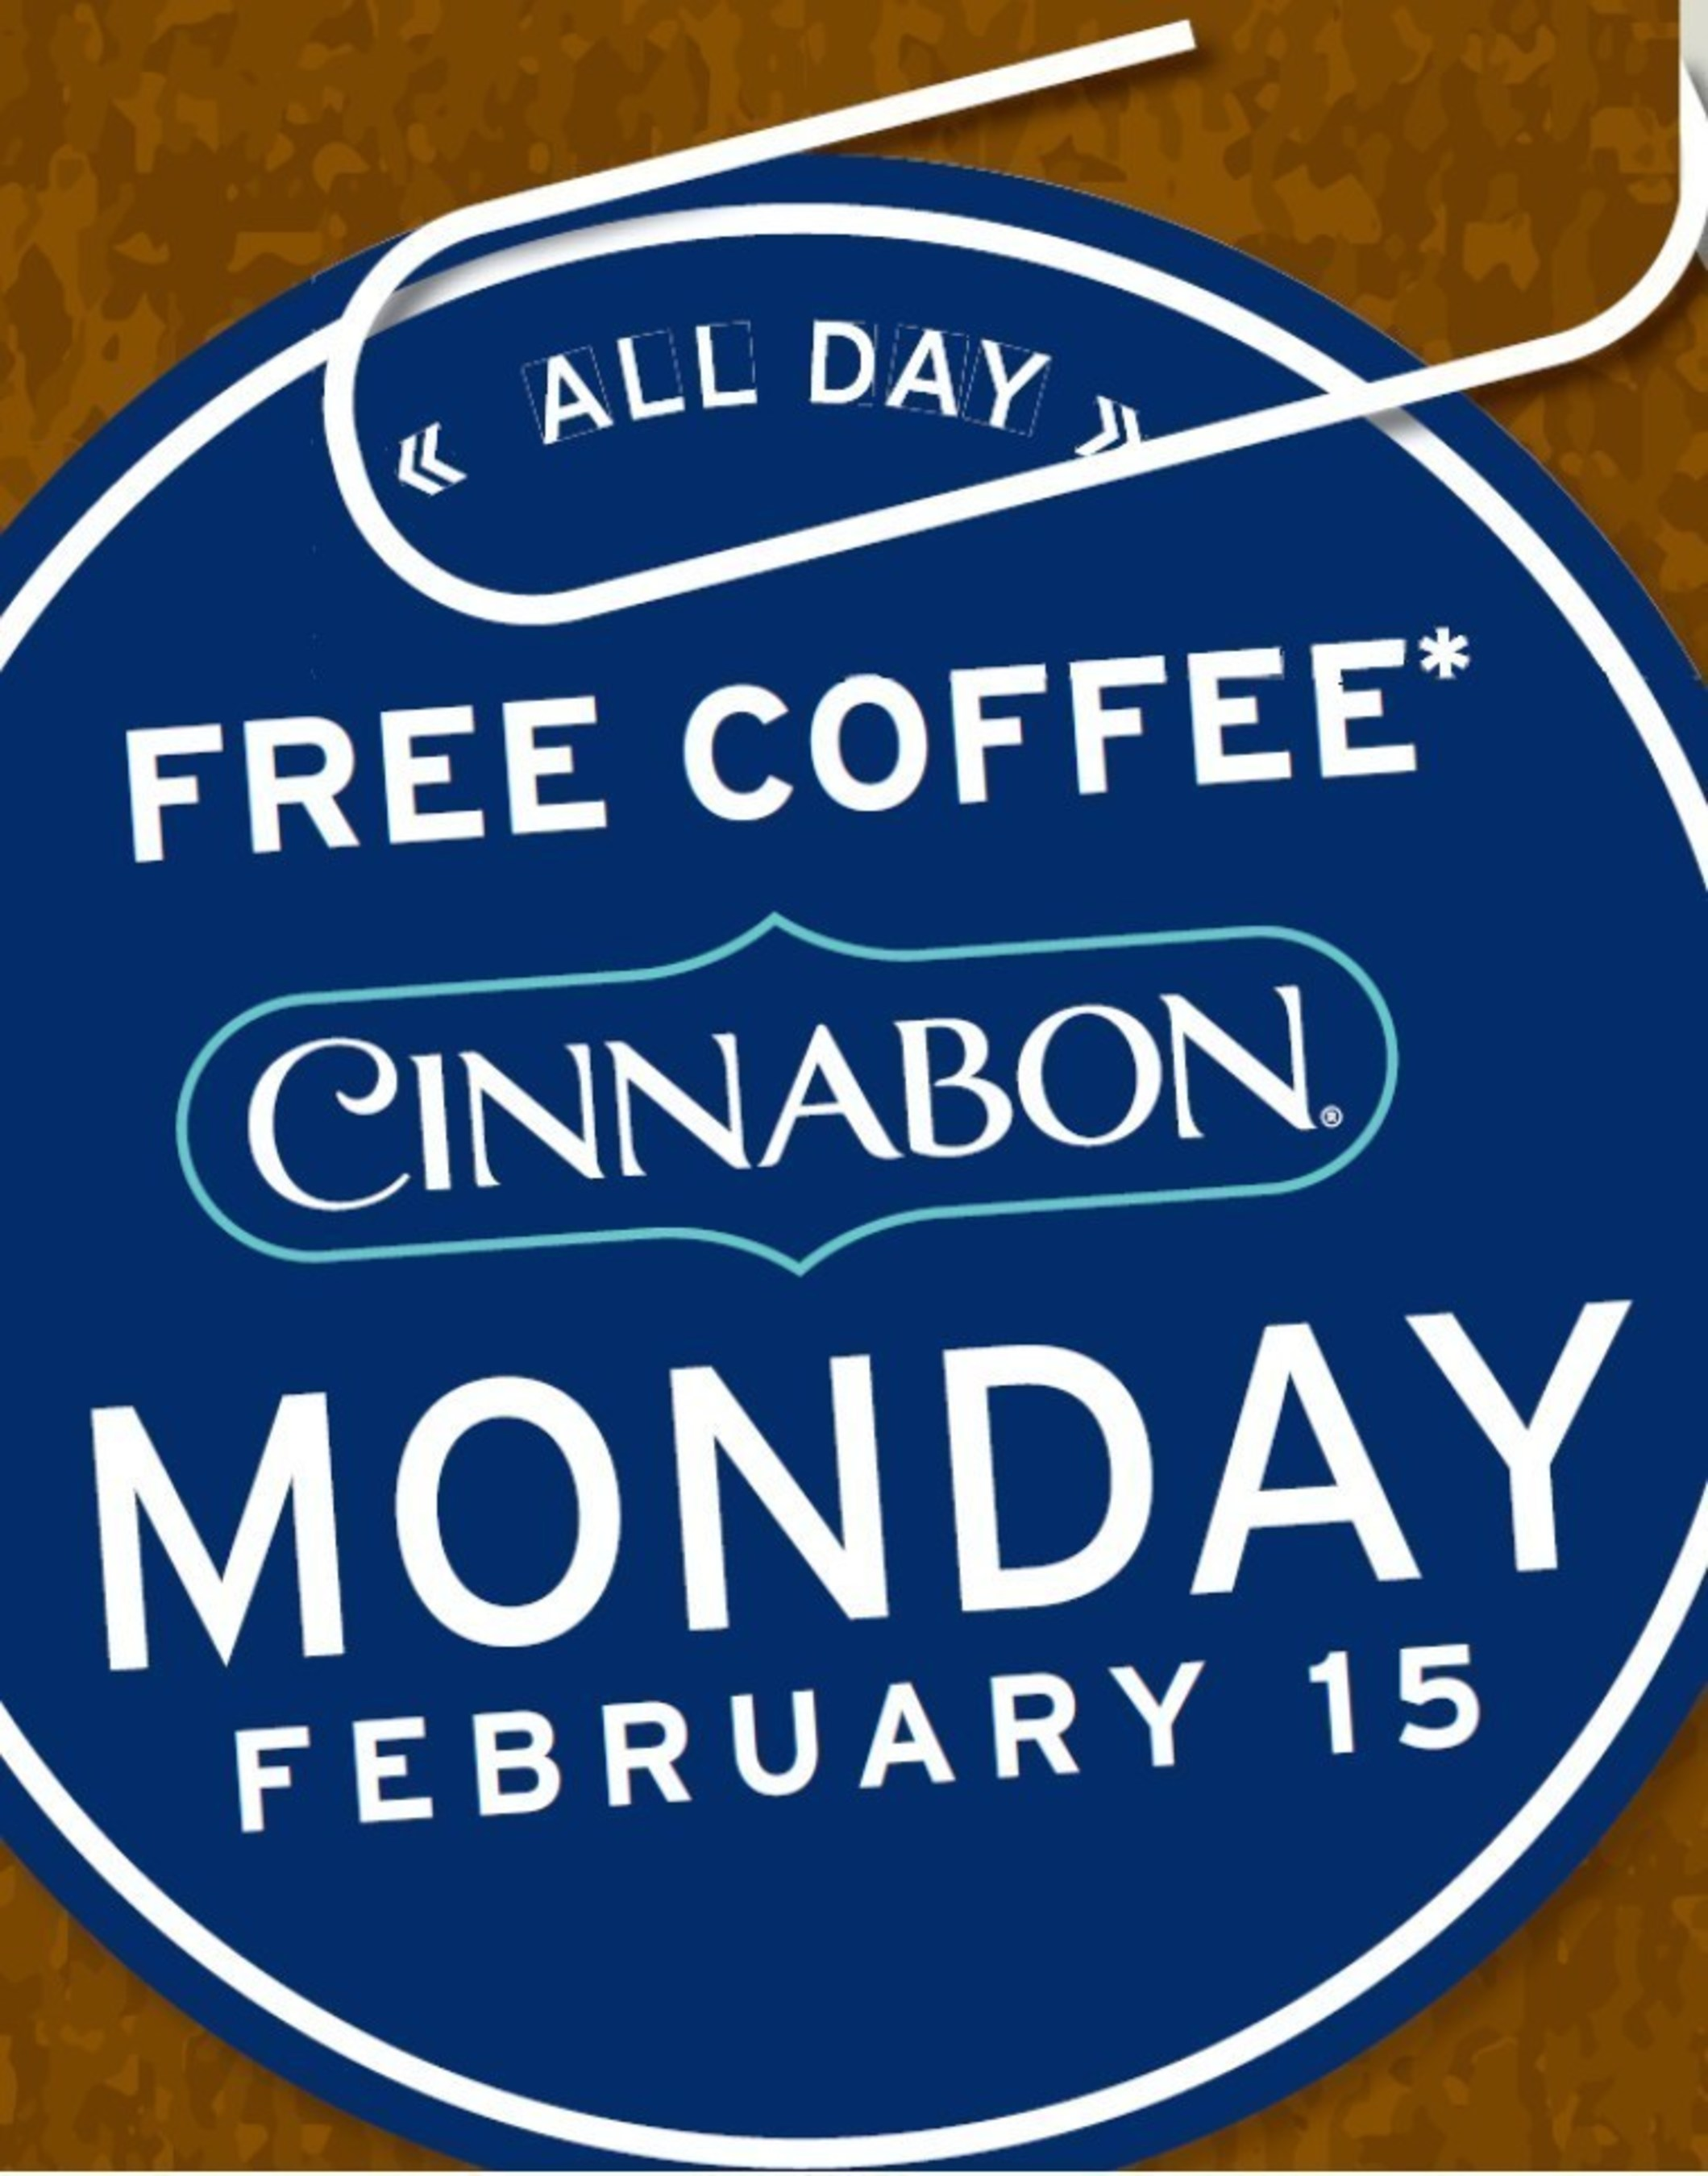 In celebration of the season premiere of Better Call Saul, fans can enjoy a FREE cup of coffee at Cinnabon on  Monday, February 15th, 2016